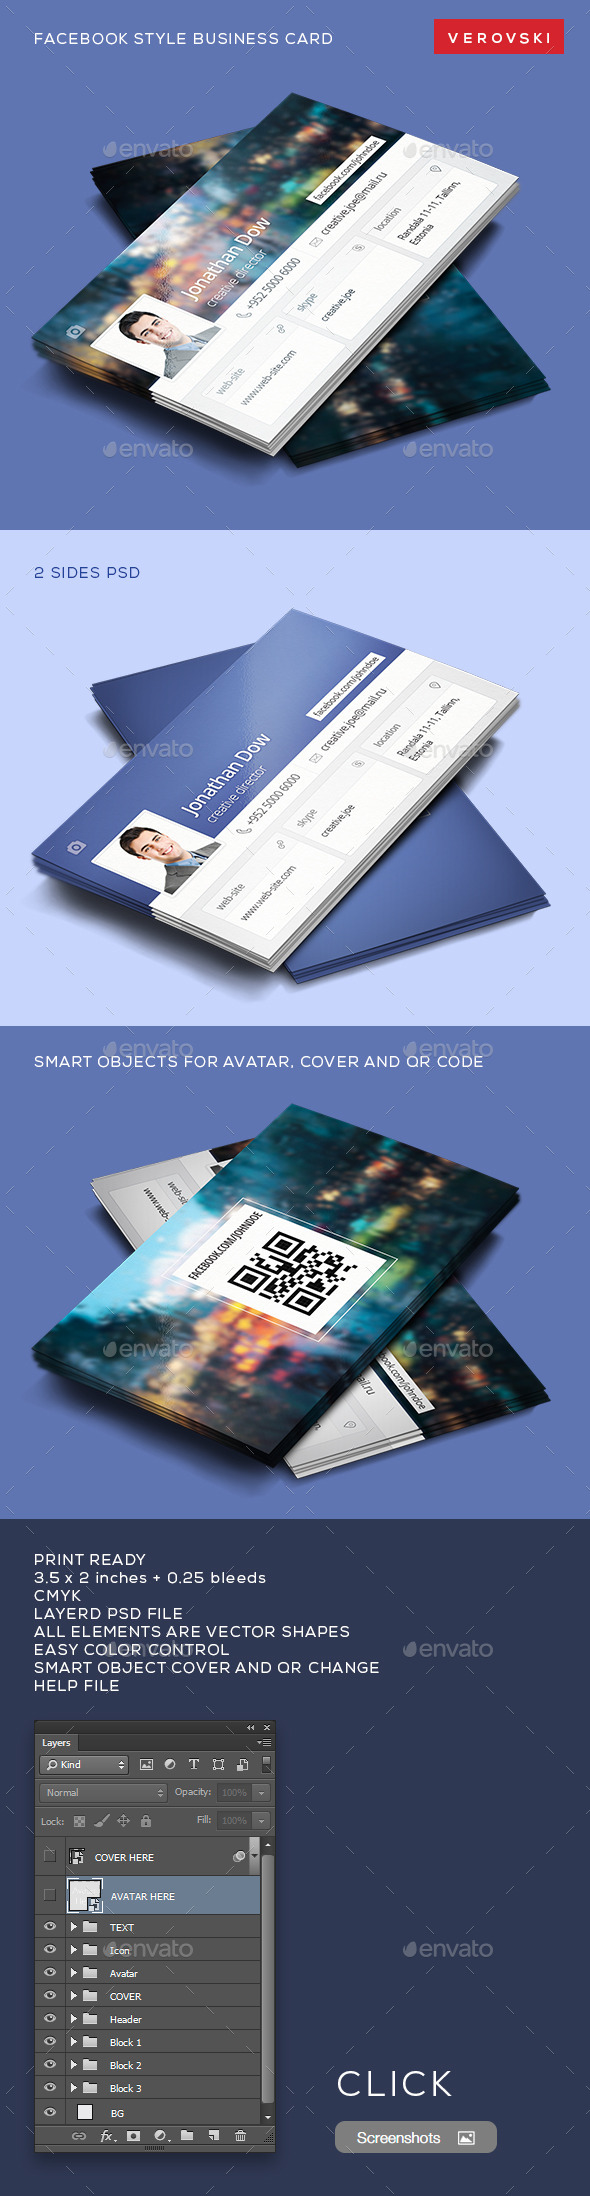 Facebook Style Business Card - Industry Specific Business Cards